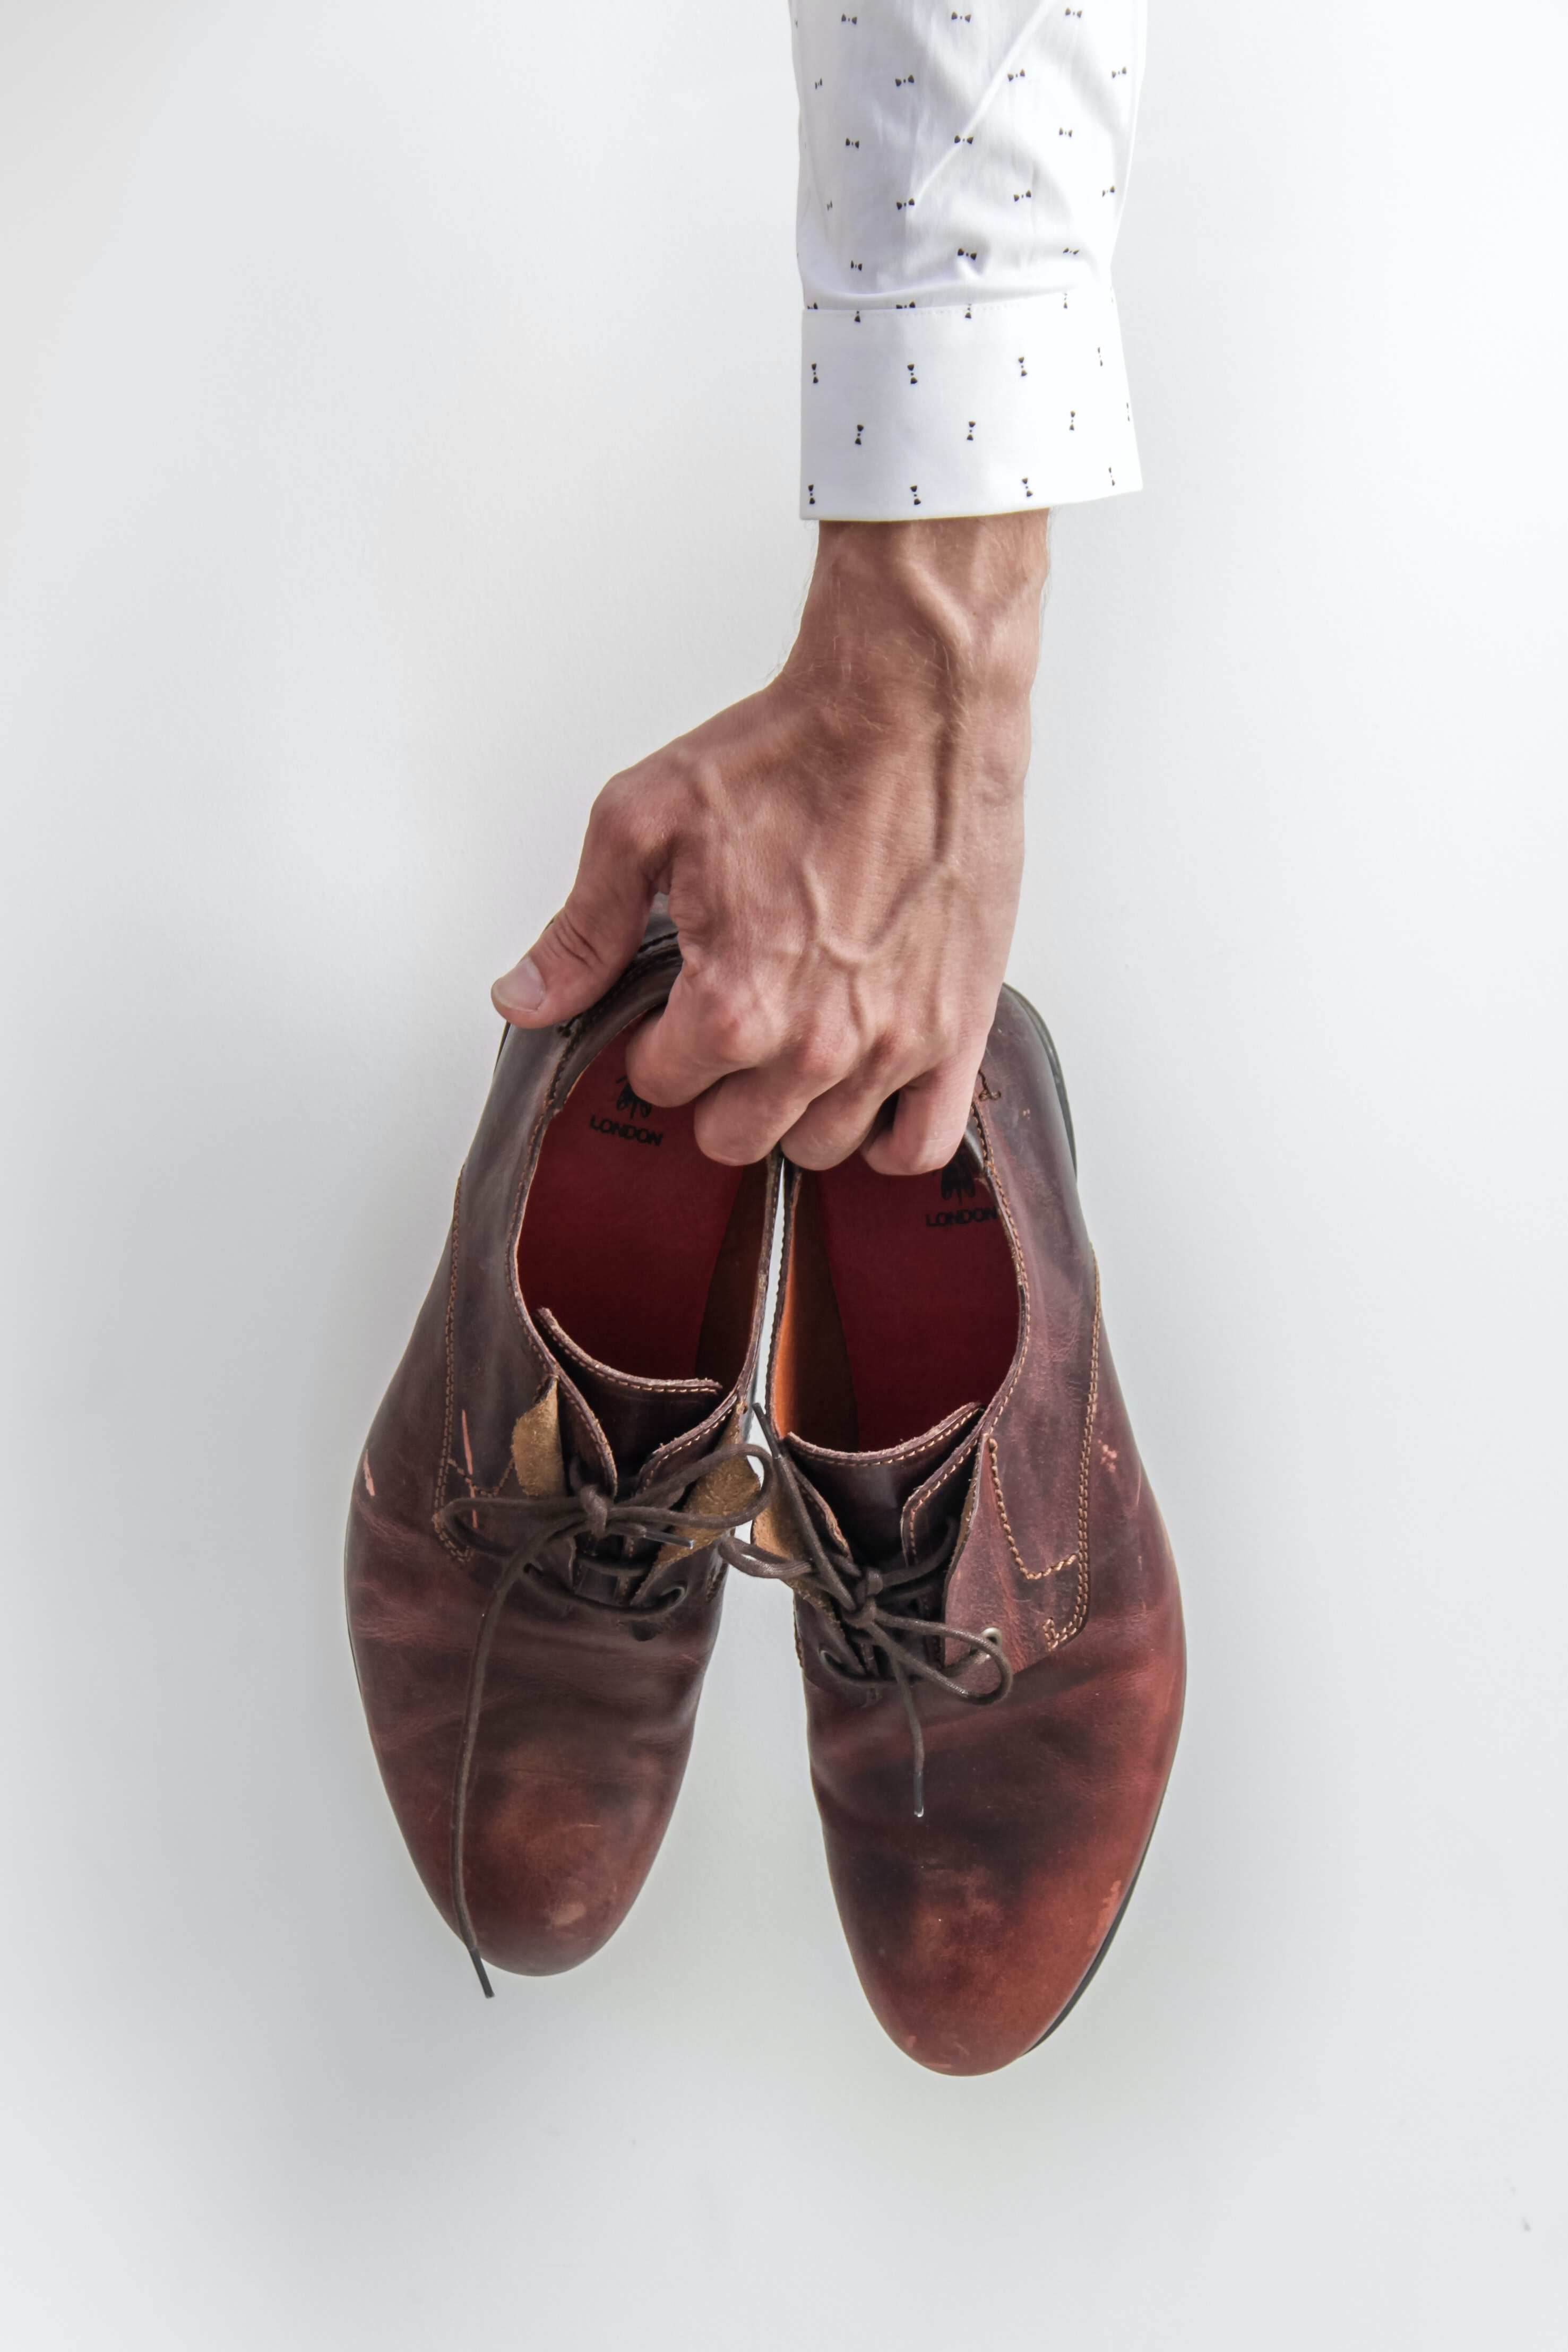 person holding pair of brown leather shoes